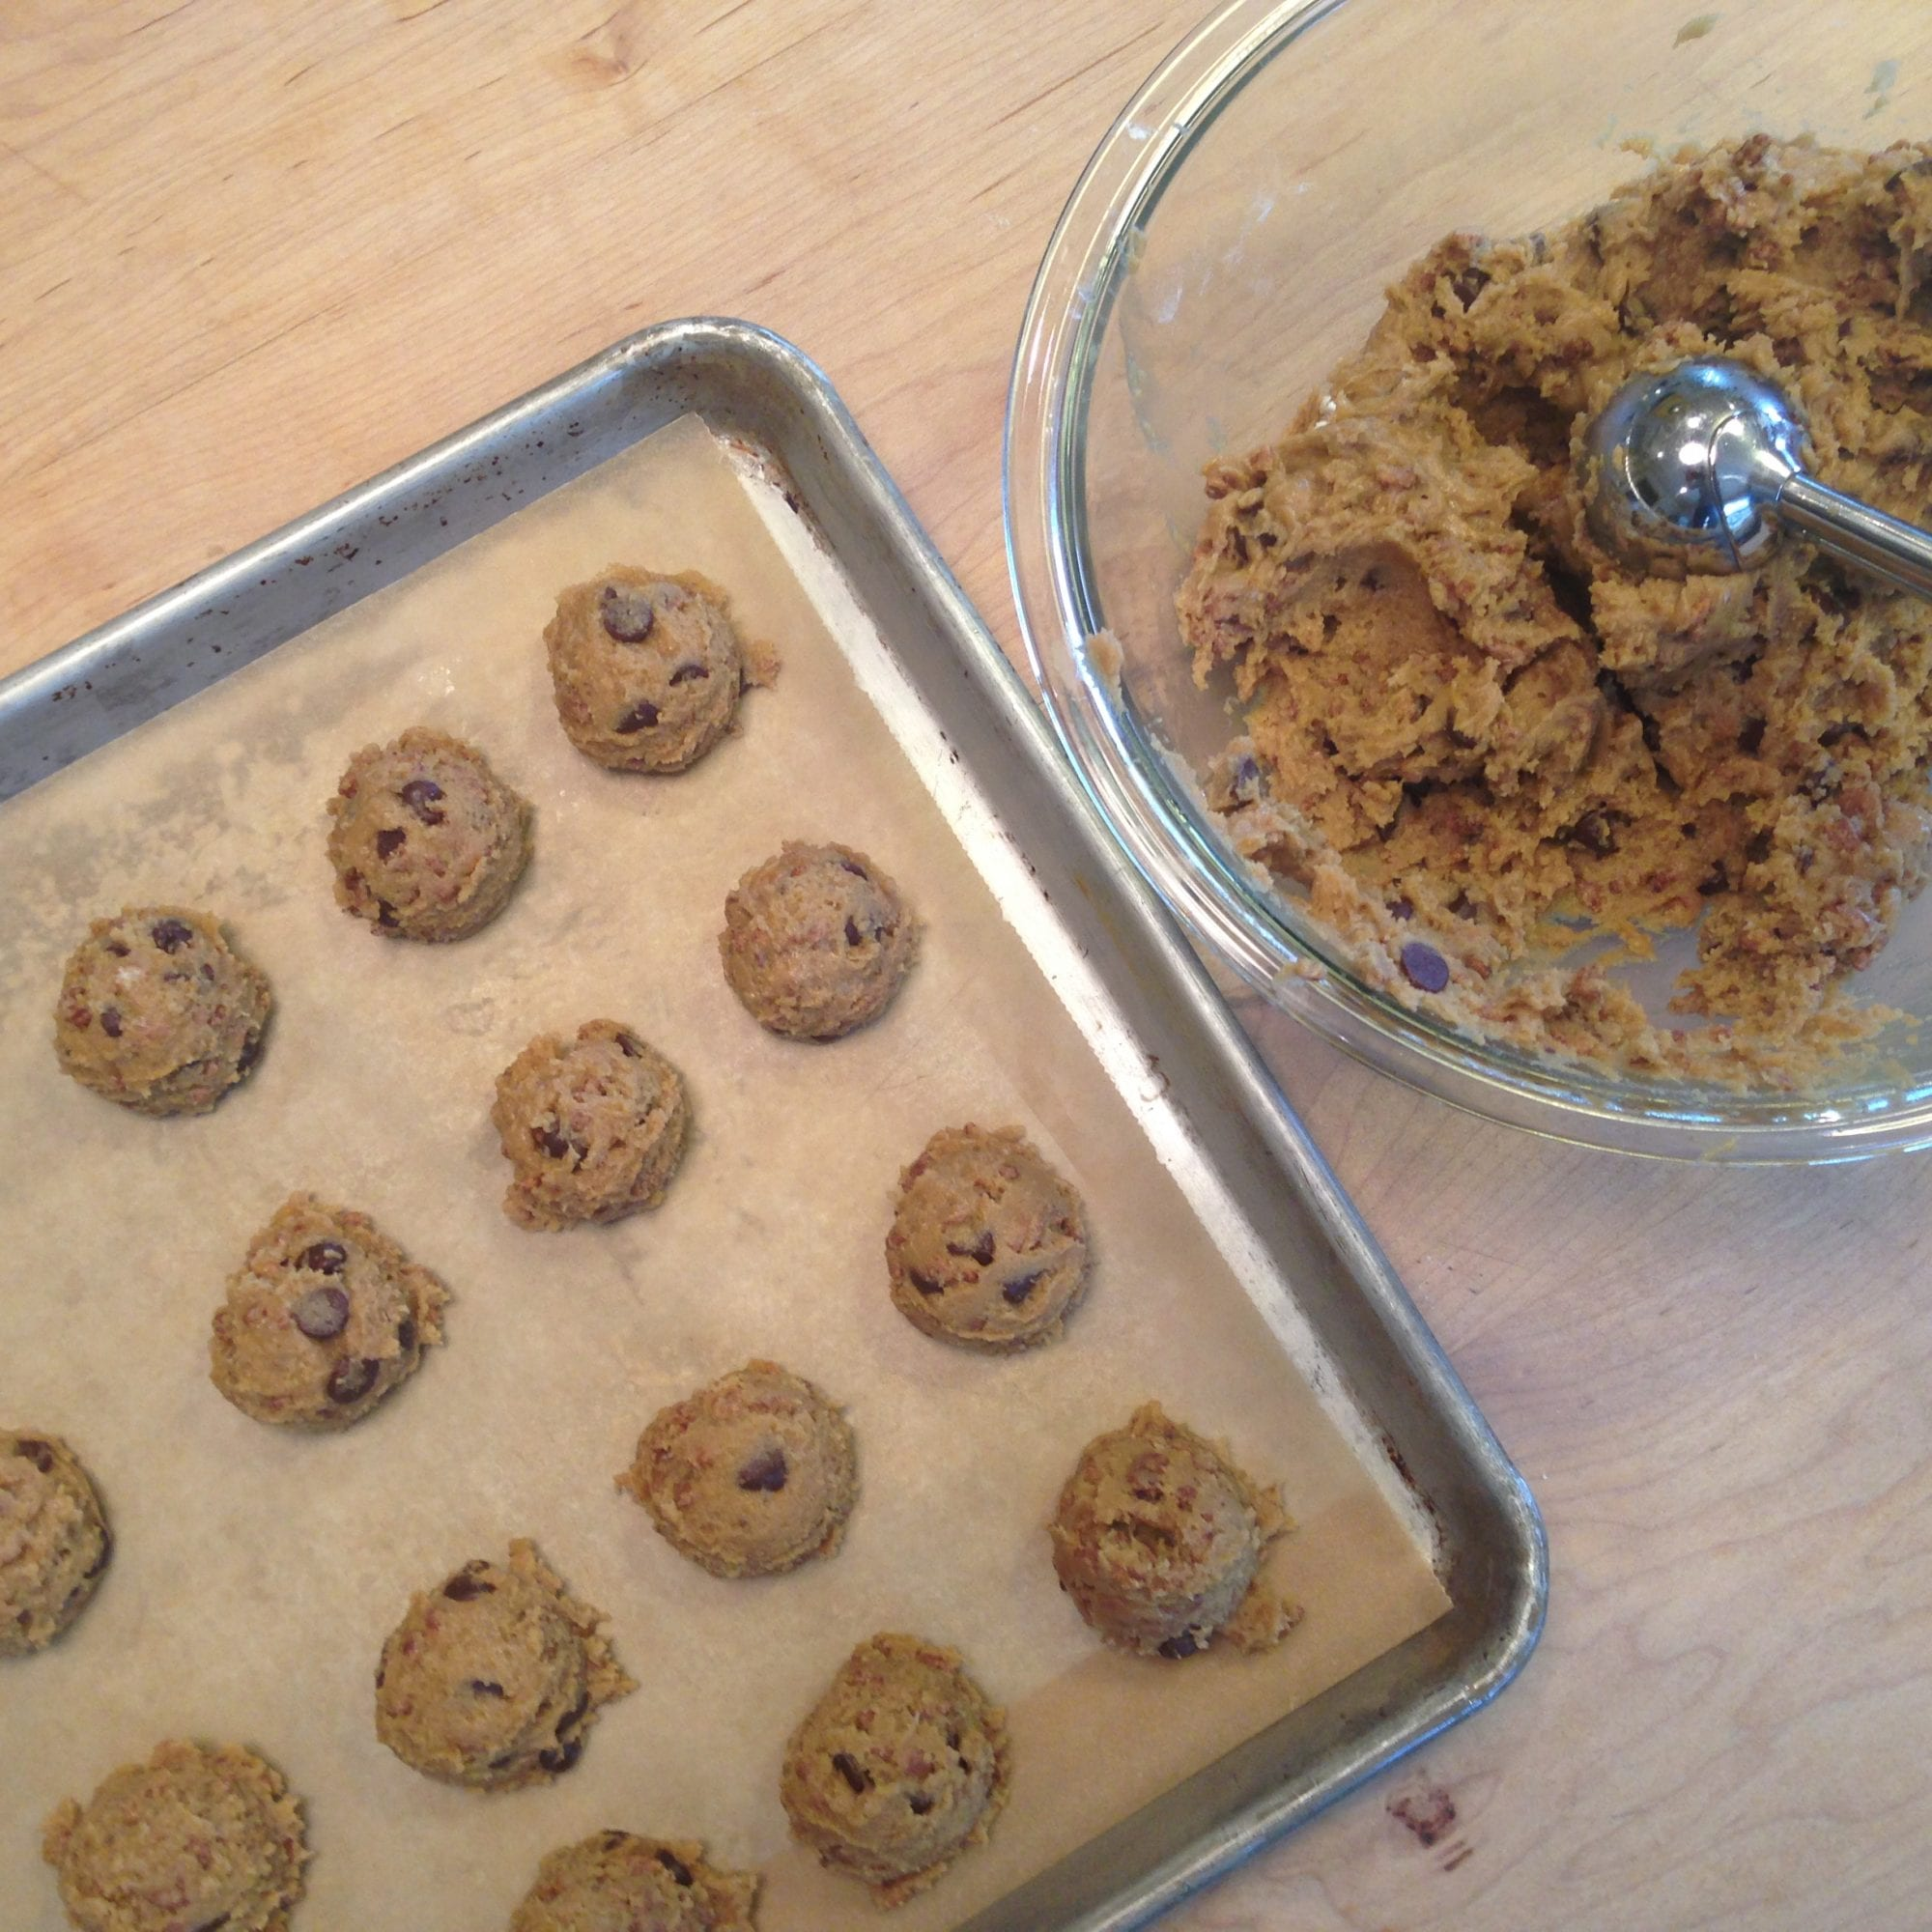 Scooping Cookie Batter Onto Baking Sheet | Jessie Sheehan Bakes